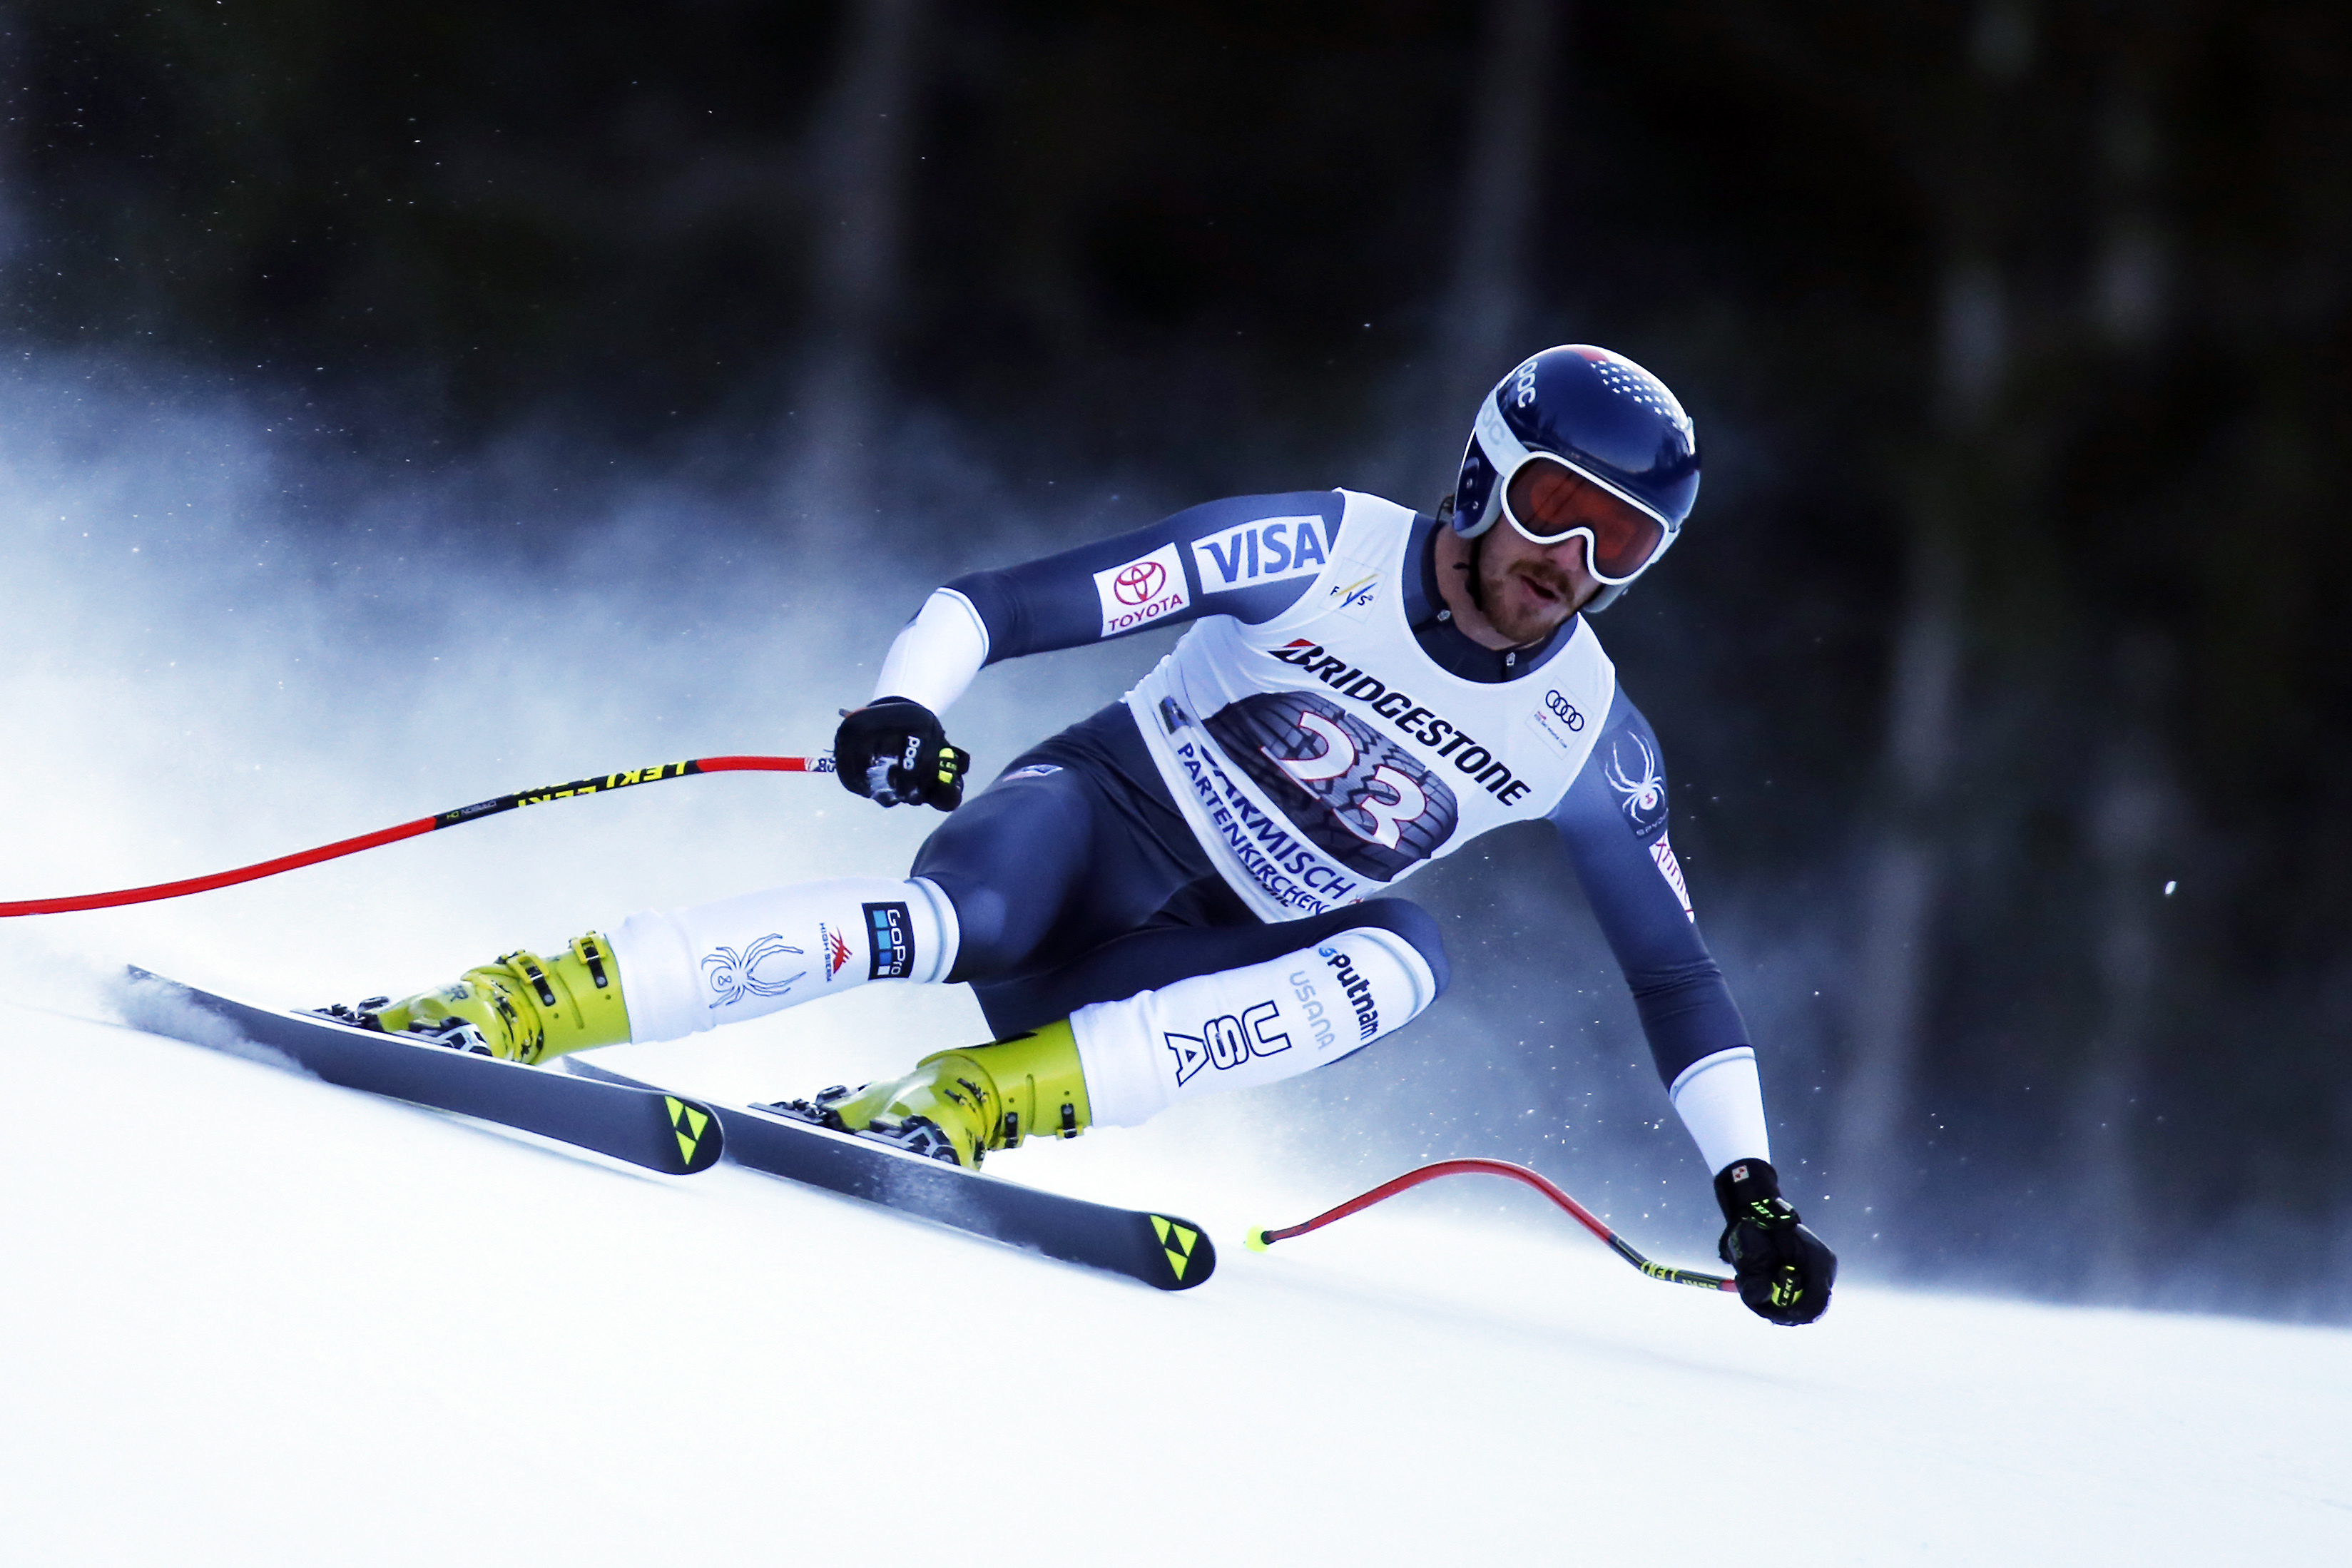 Bryce Bennett, shown here competing earlier this season in Garmisch, Germany, finished 15th in Saturday's World Cup downhill. (Getty Images/Agence Zoom - Alexis Boichard)